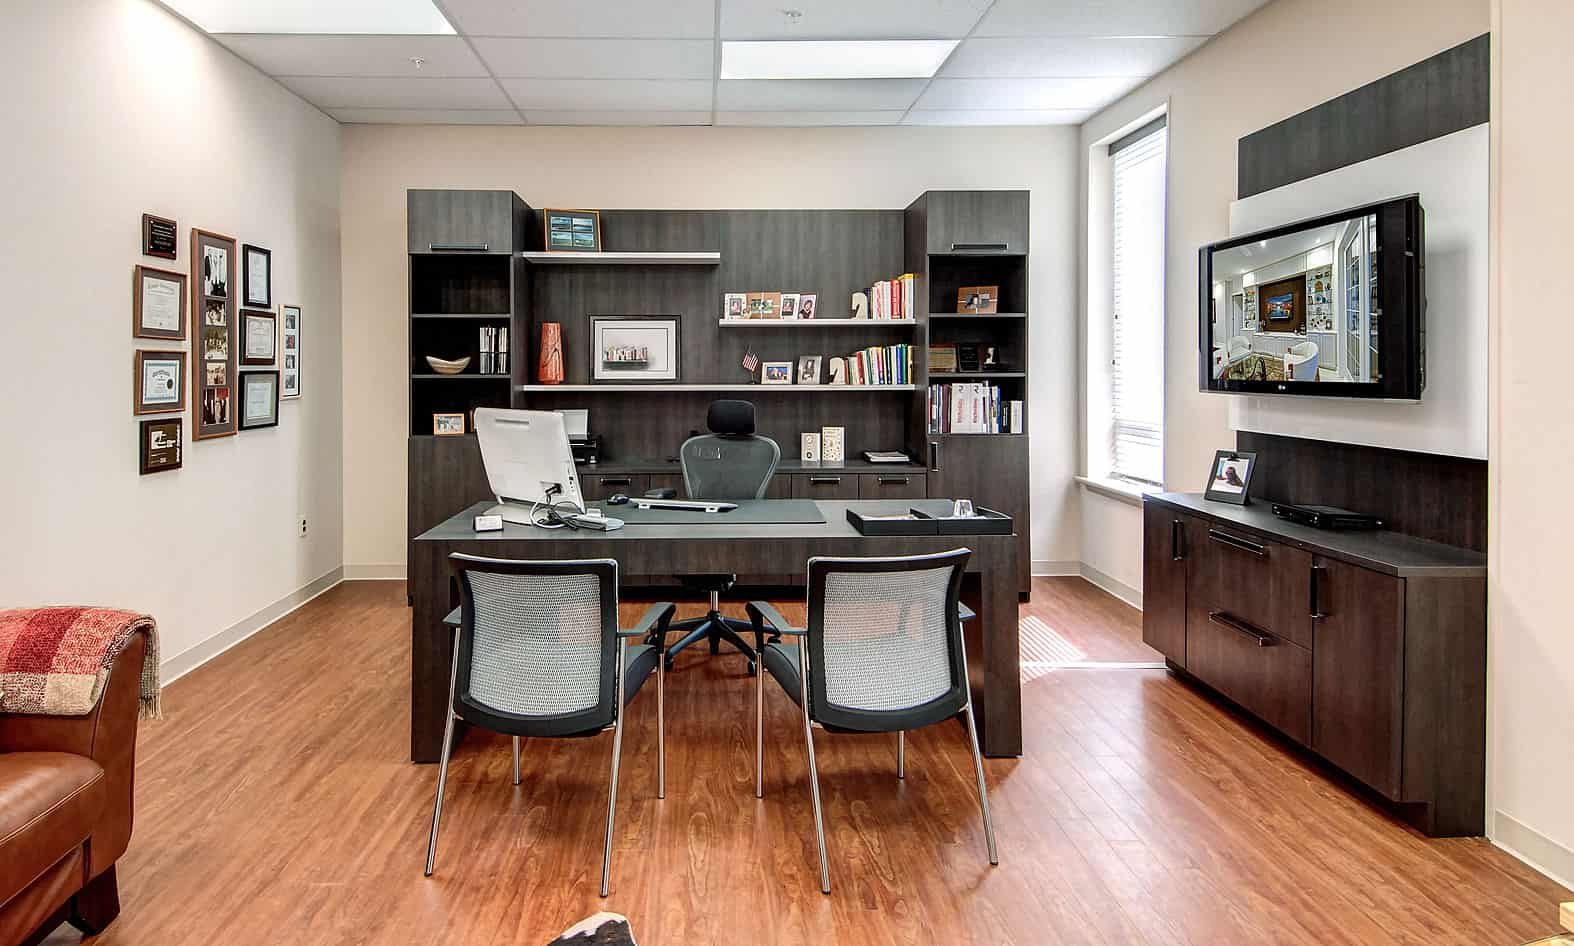 Large home office with custom cabinetry, open shelving, built-in desk, and a table with chairs.